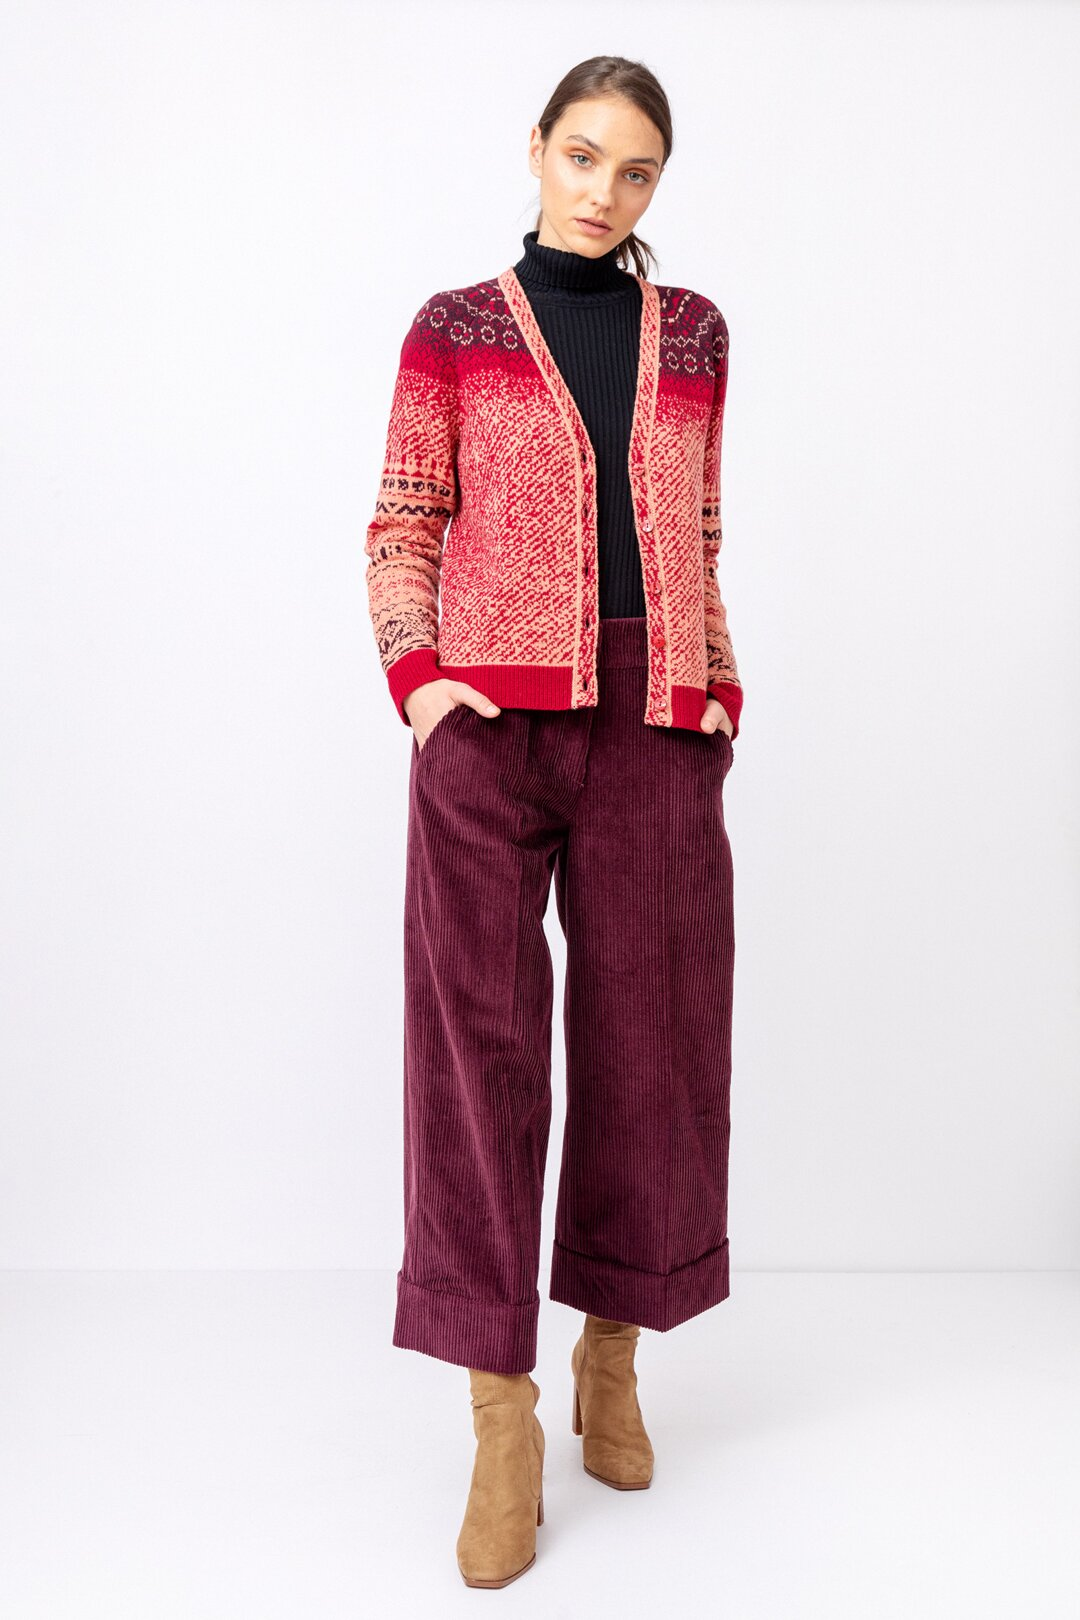 outfit-7c8a8781